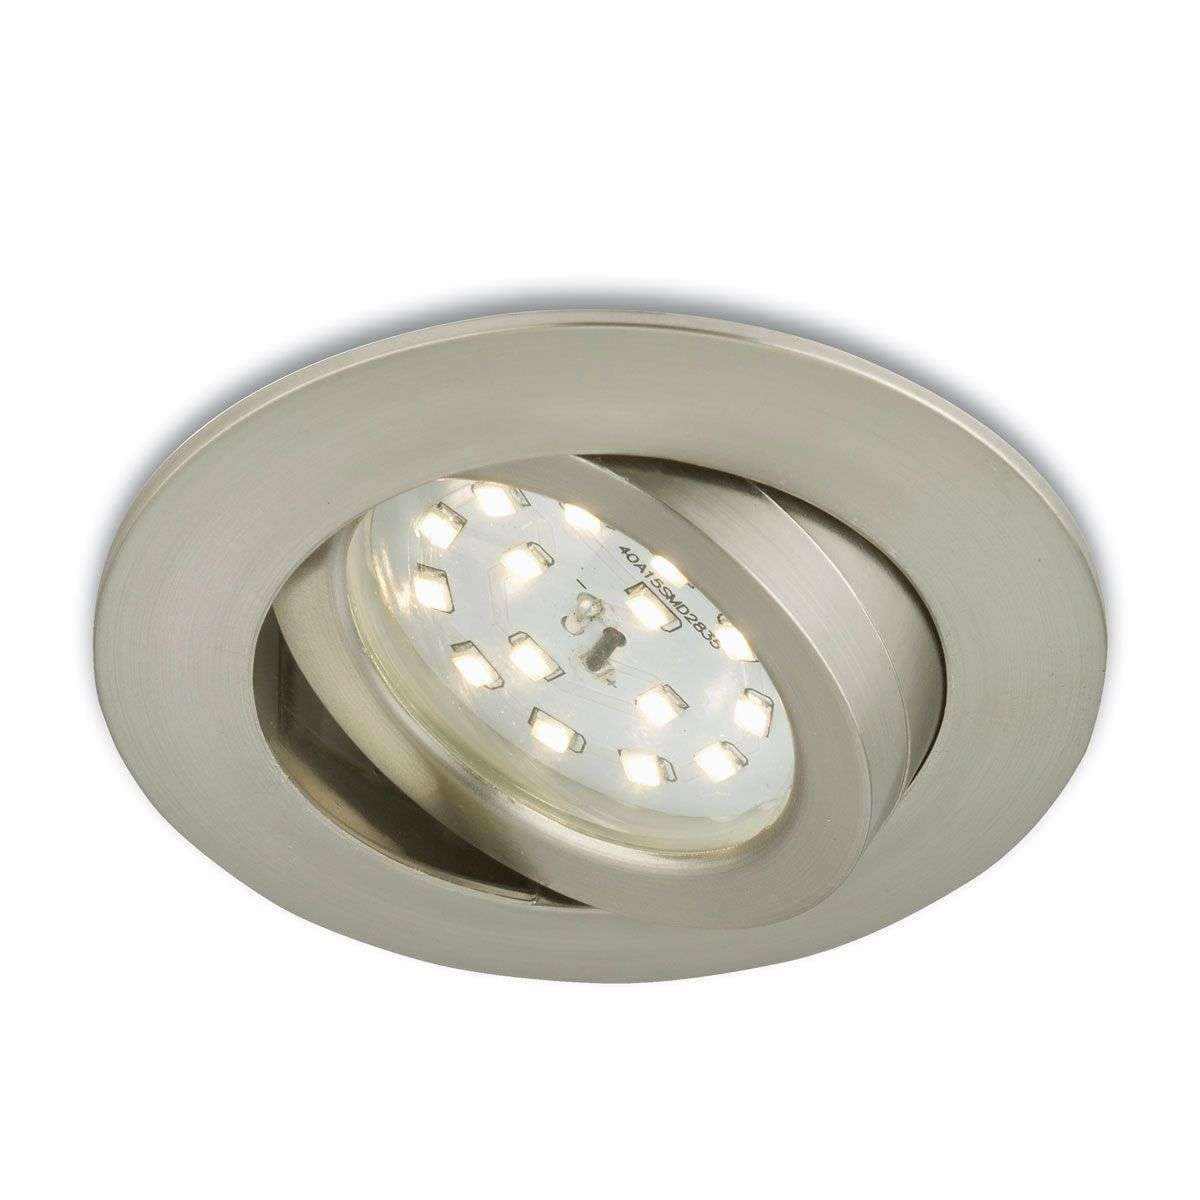 Spot encastré LED mobile Erik nickel mat-1510283-31